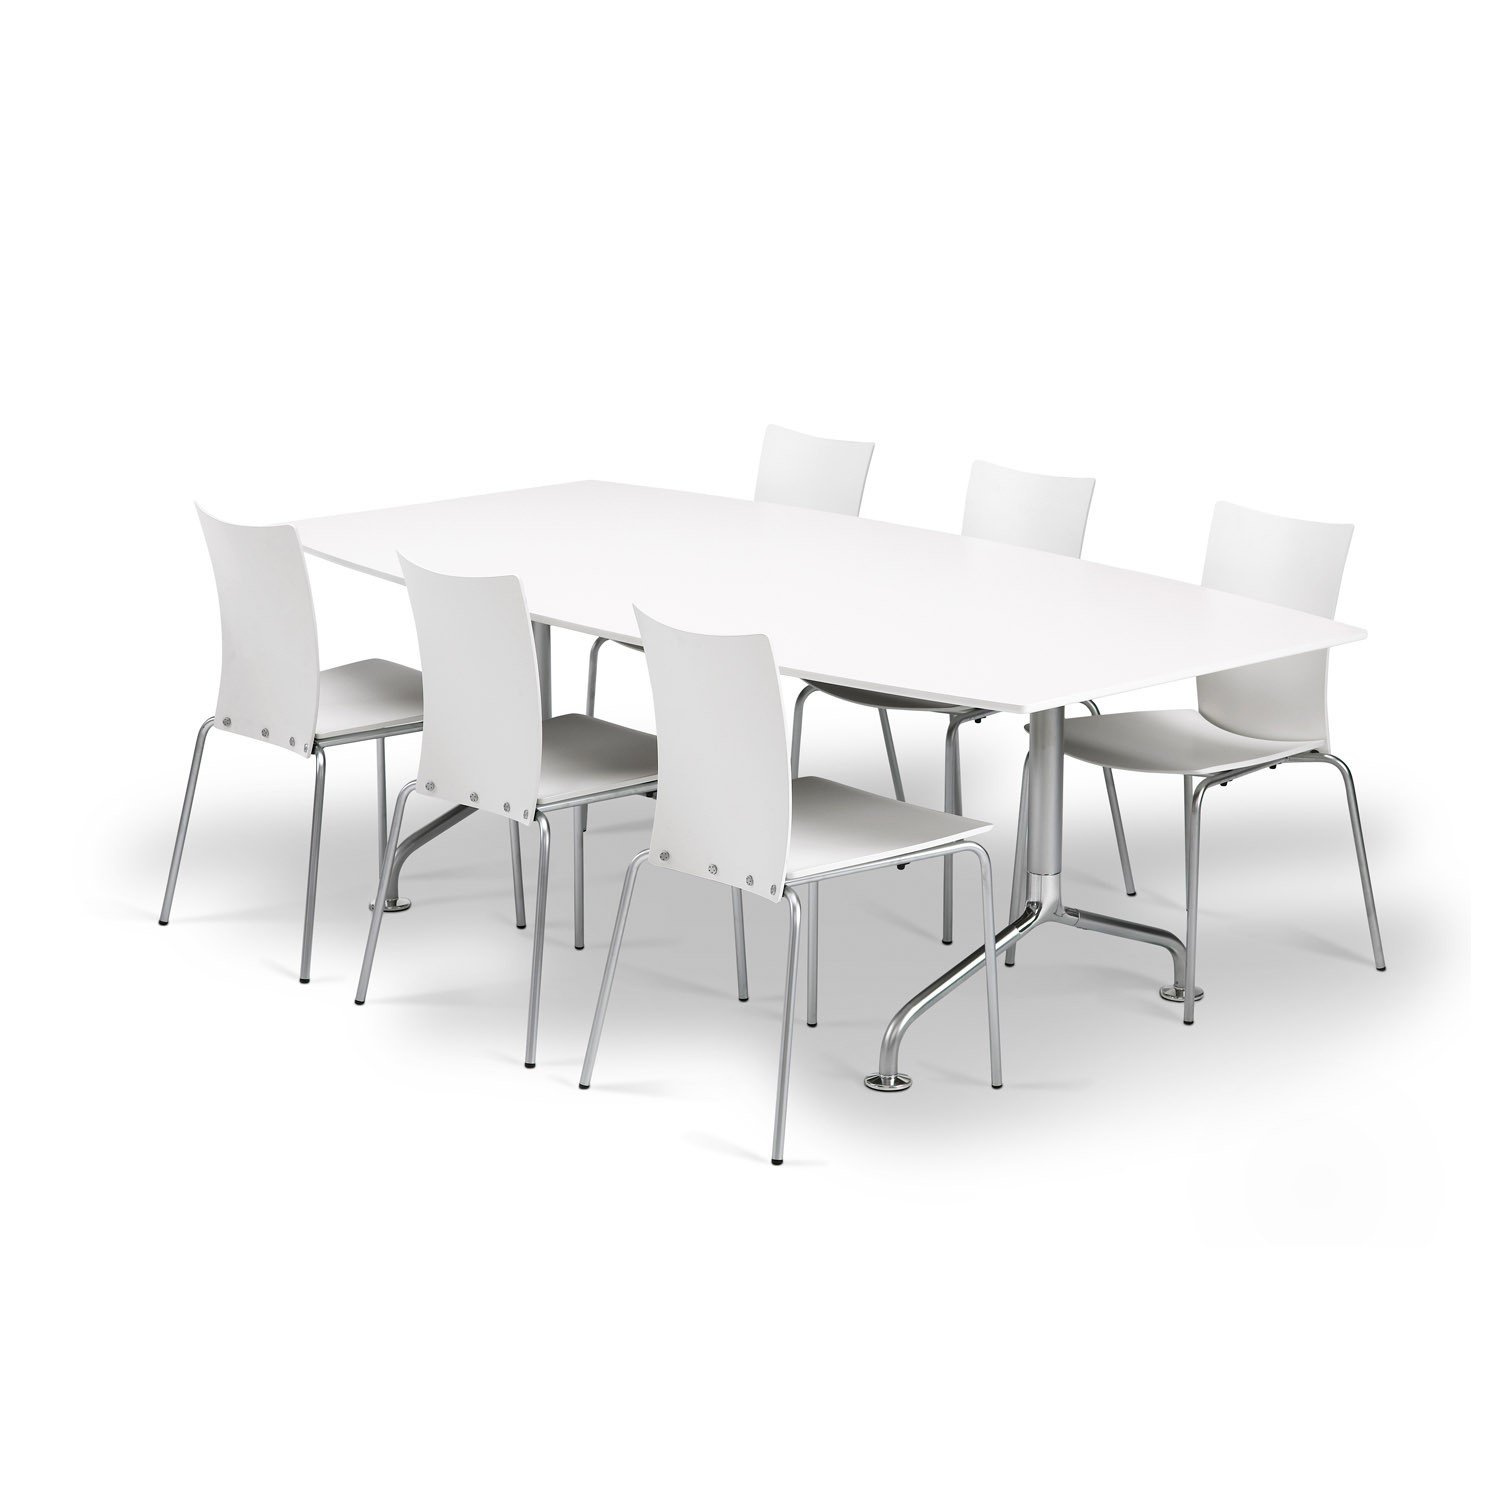 Ono Meeting Conference Table